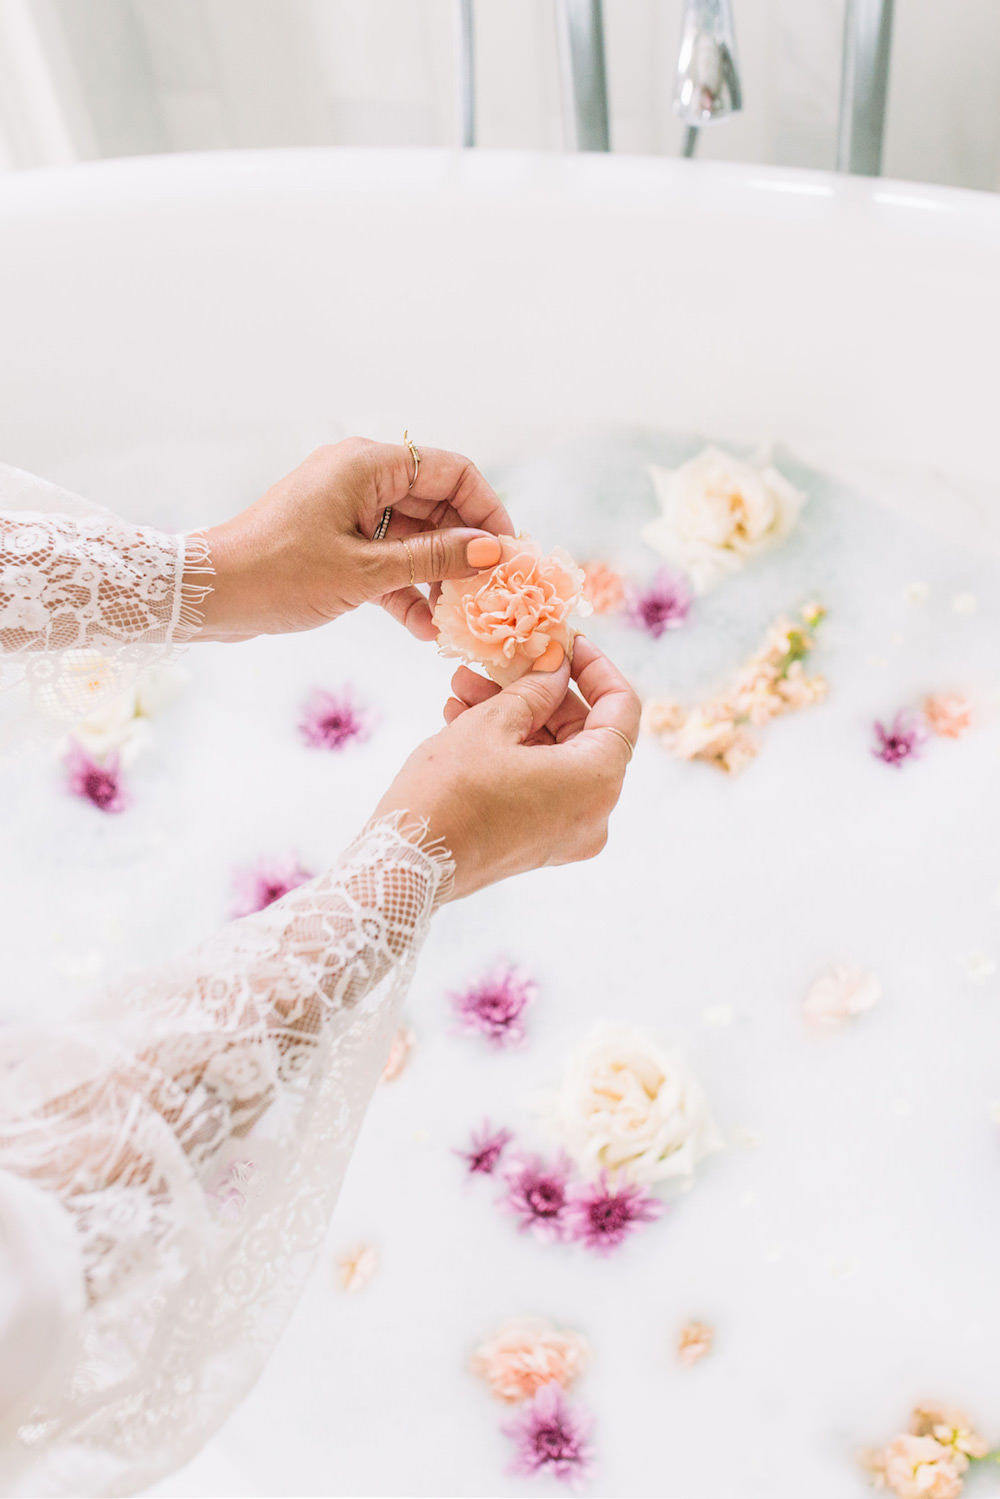 Caitlin Lindquist of the Arizona beauty blog Dash of Darling shares three steps to smooth summer skin while taking a relaxing bath with petals.